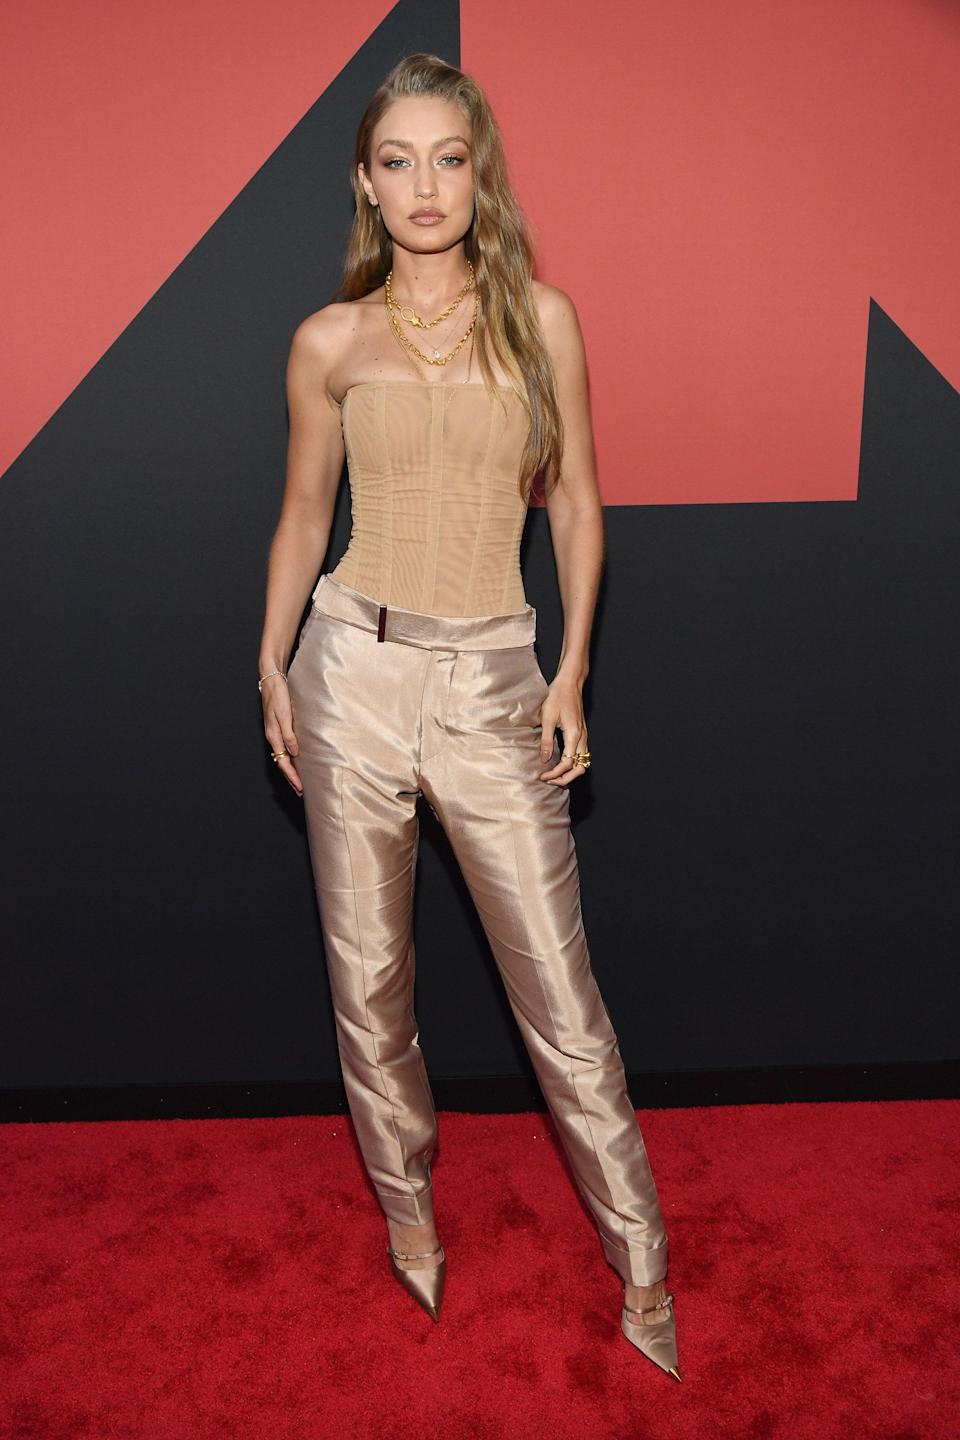 There's naked dressing, and then there's naked <em>power</em> dressing. Gigi hit the 2019 MTV Awards in a strapless skin-toned bustier bodysuit tucked into iridescent nude trousers. Her footwear matched the theme, naturally, and the chains around her neck add a touch of gold to an already luxe look.